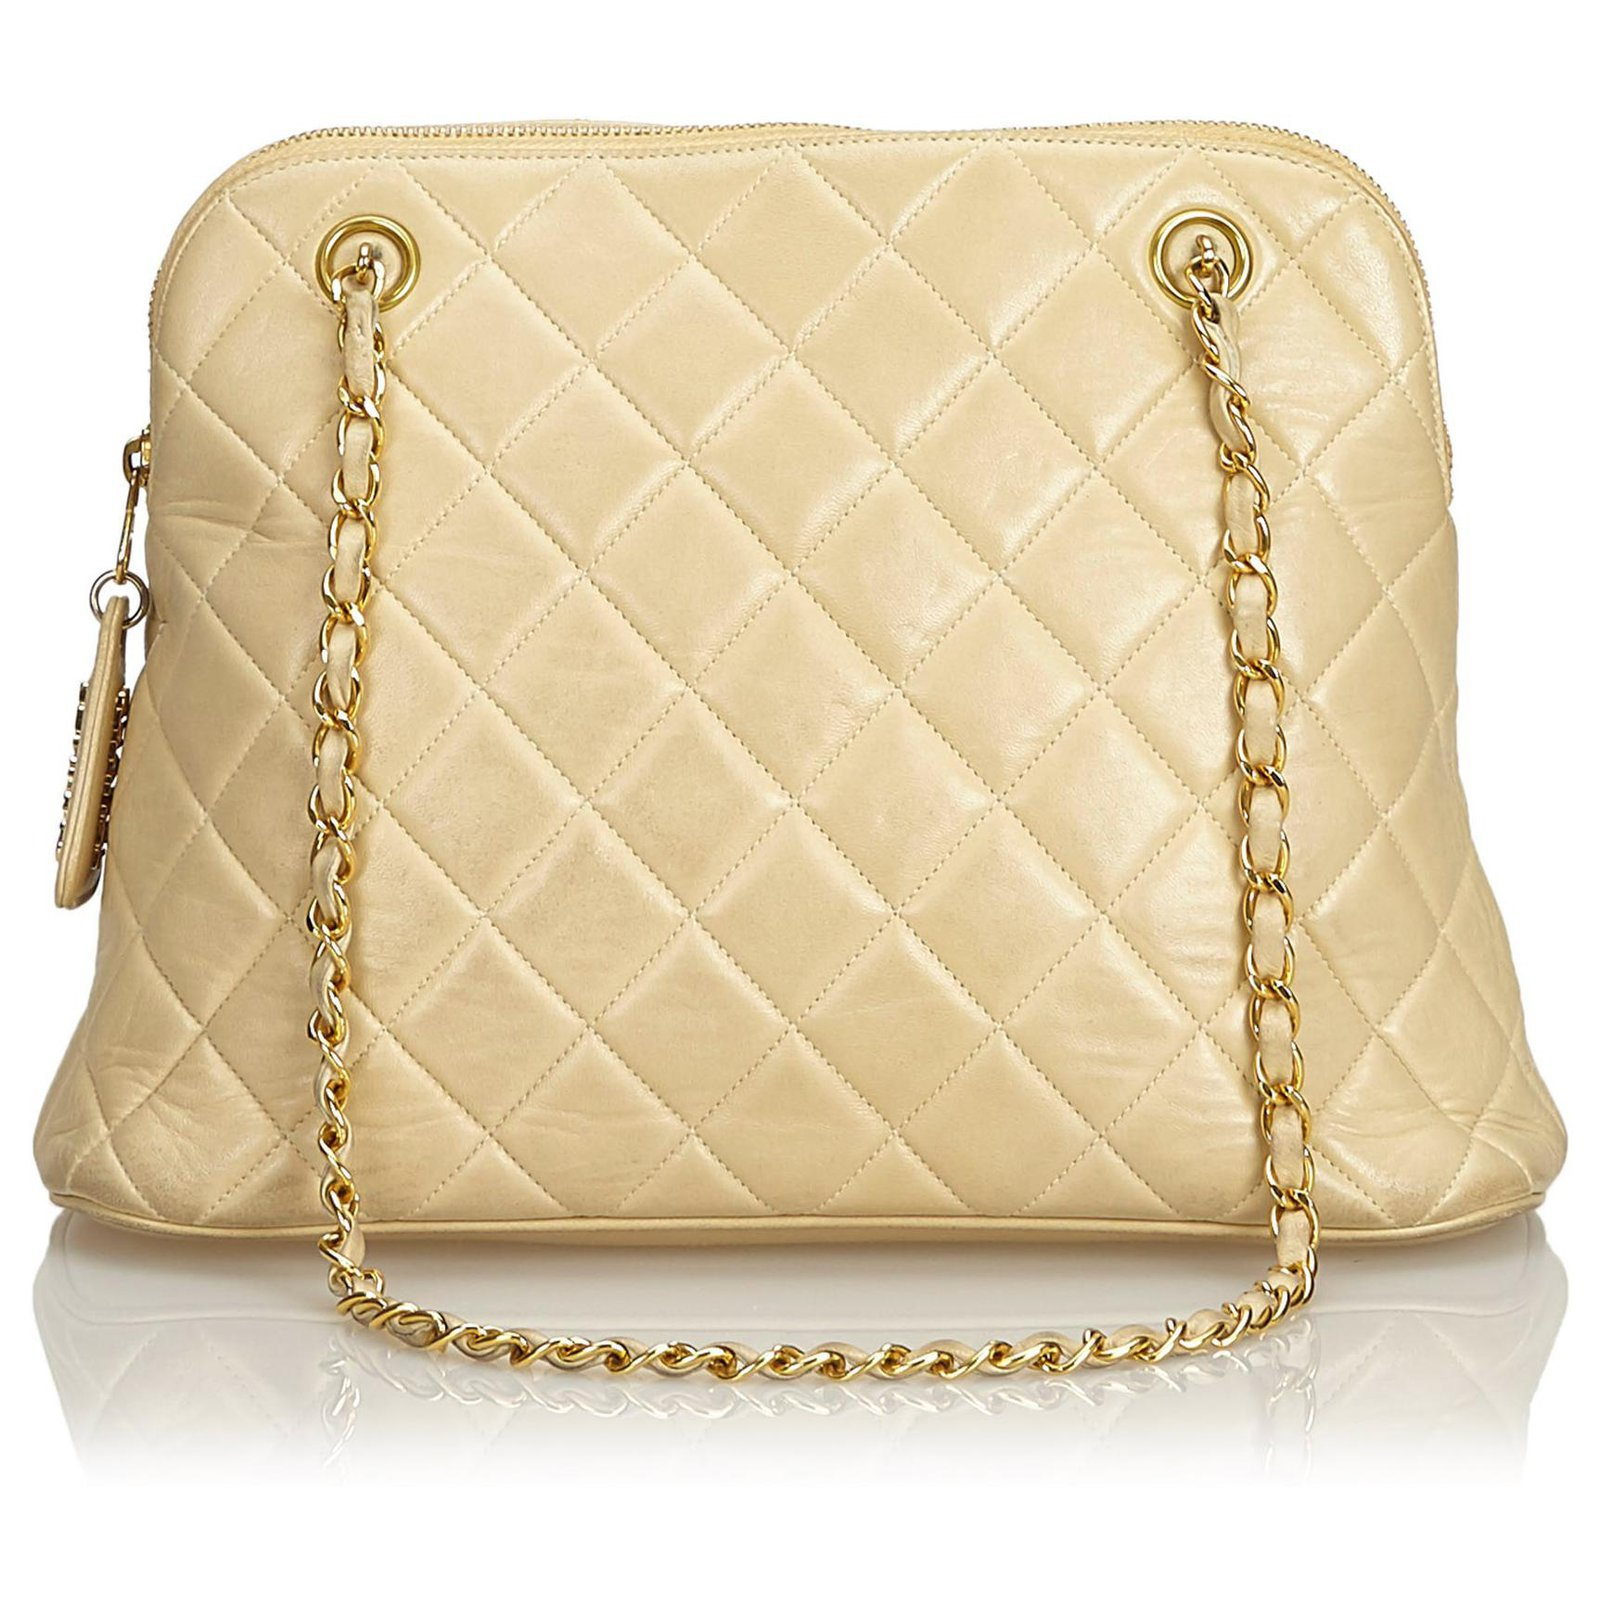 c75d9cb8a7c9 Chanel Chanel Brown Quilted Caviar Chain Shoulder Bag Handbags Leather Brown,Beige  ref.129085